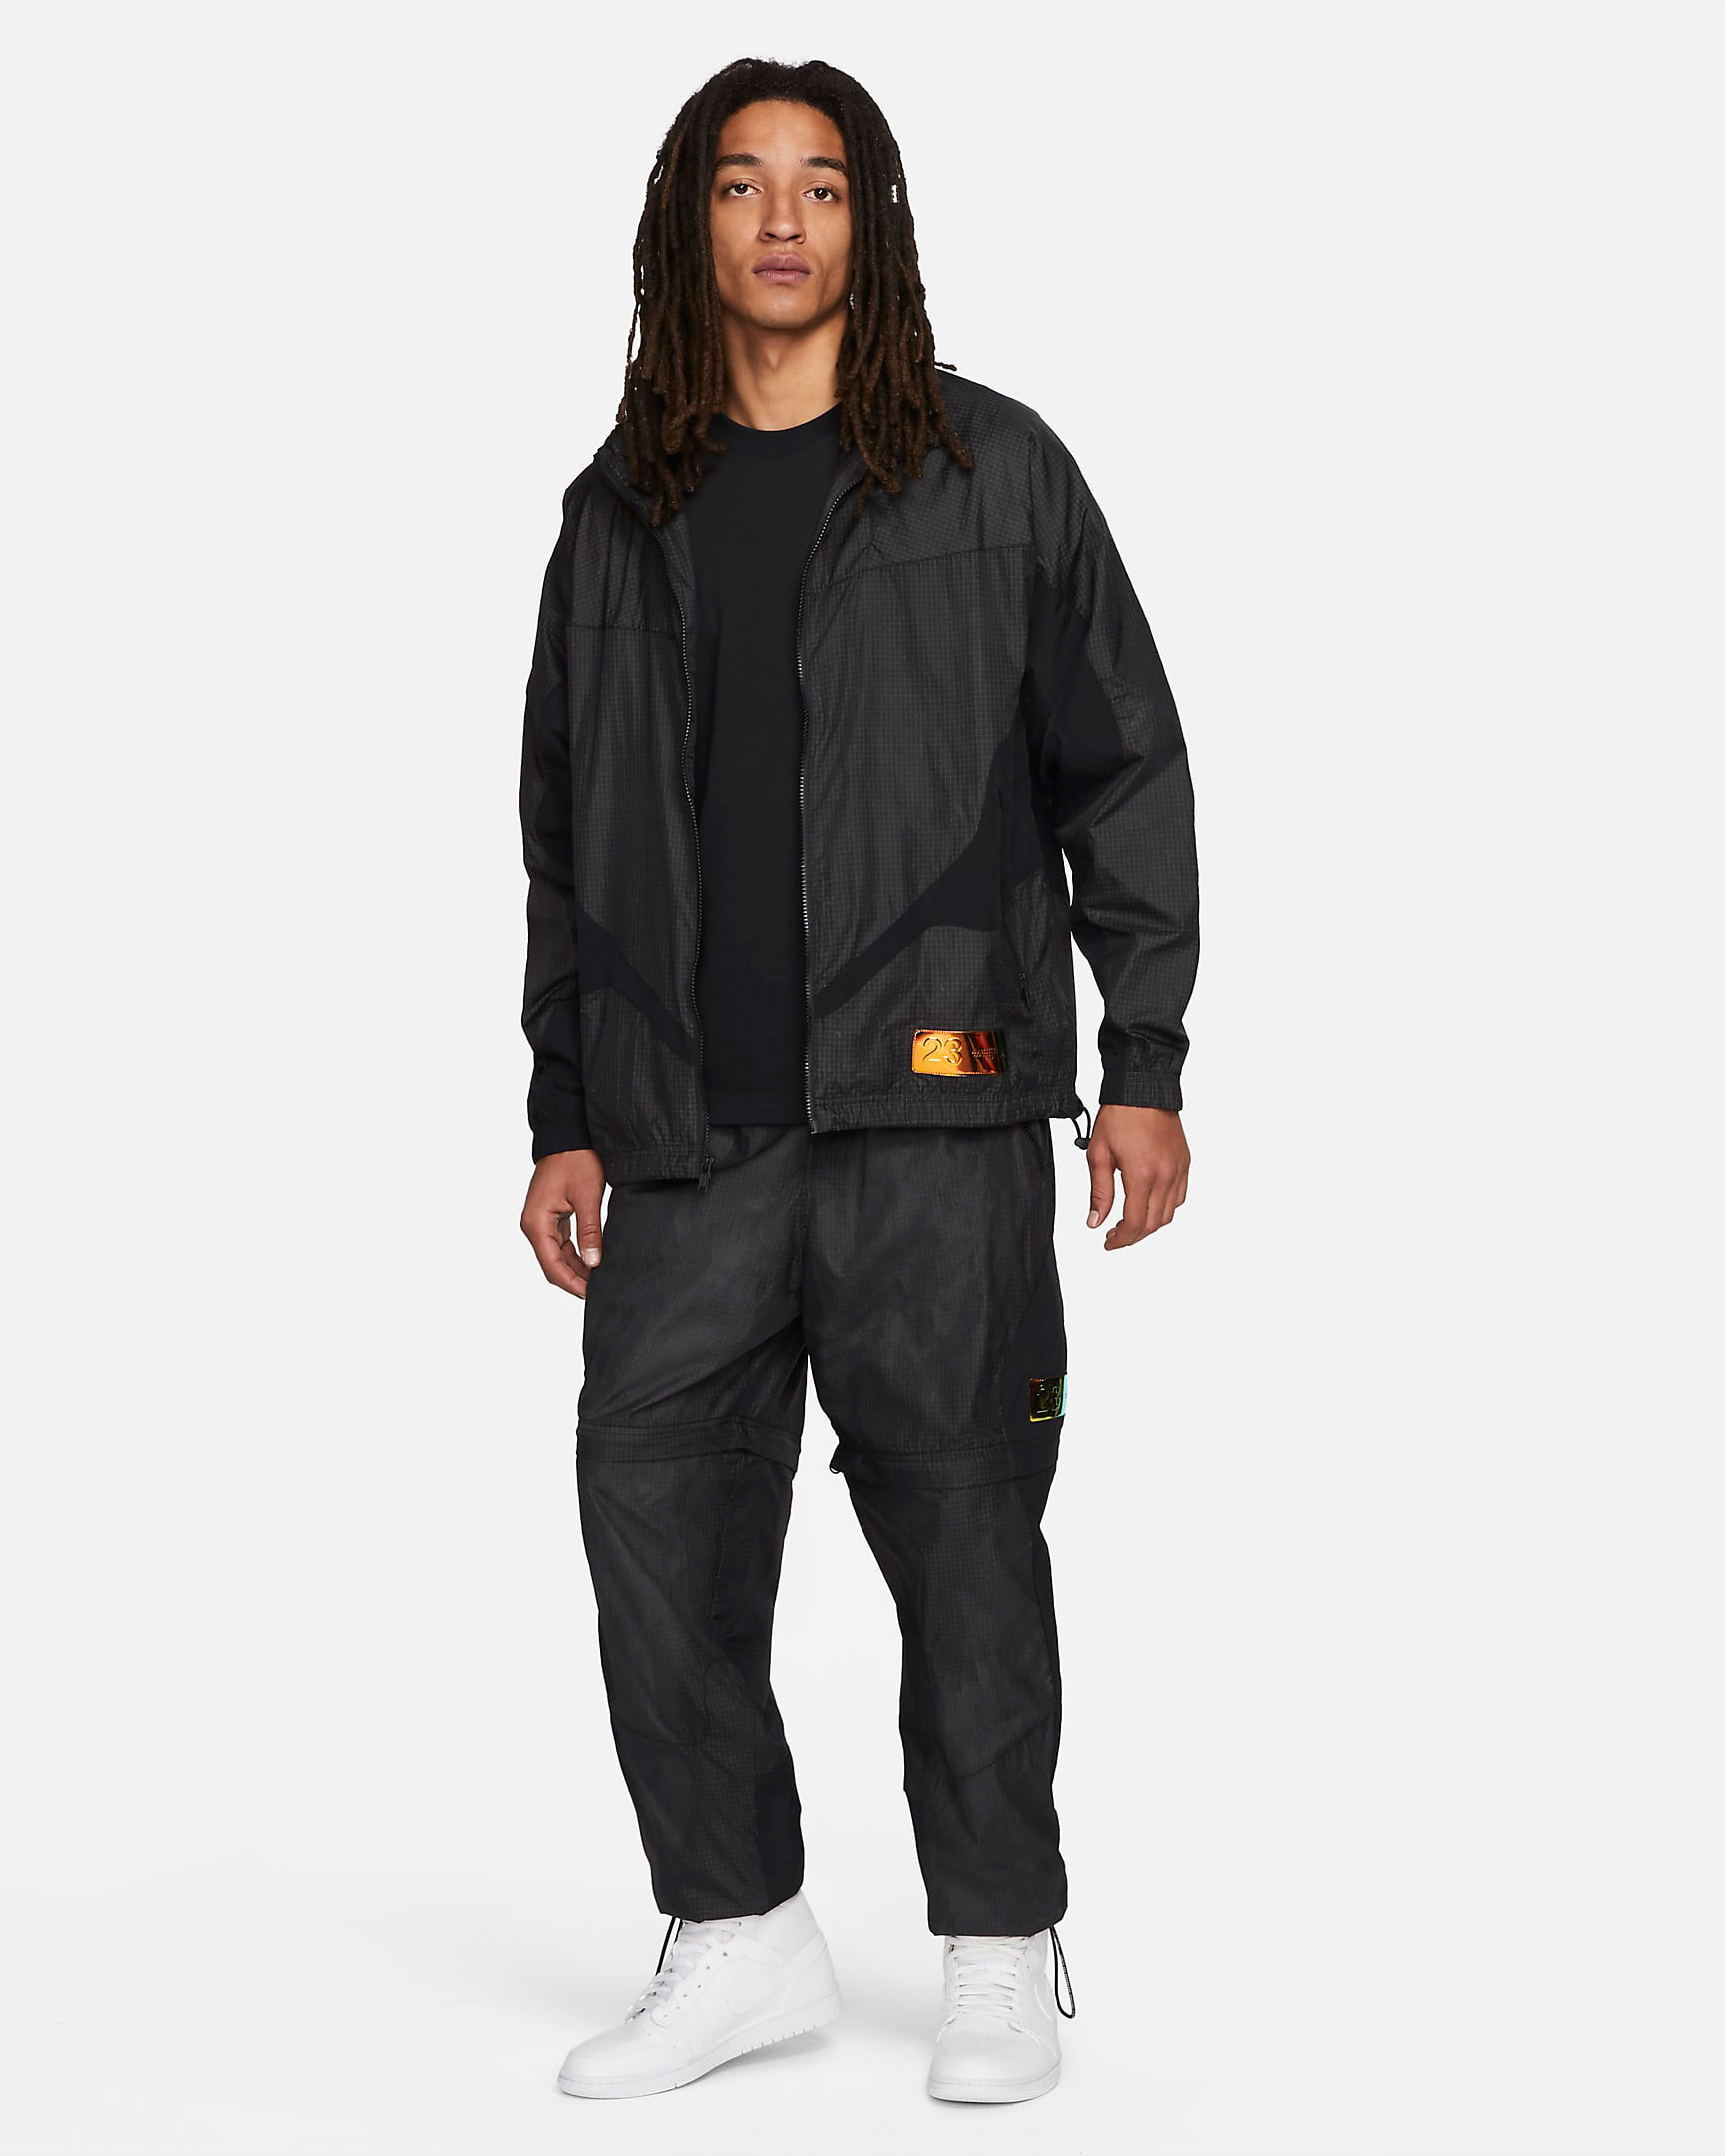 jordan-23-engineered-track-suit-black-university-gold